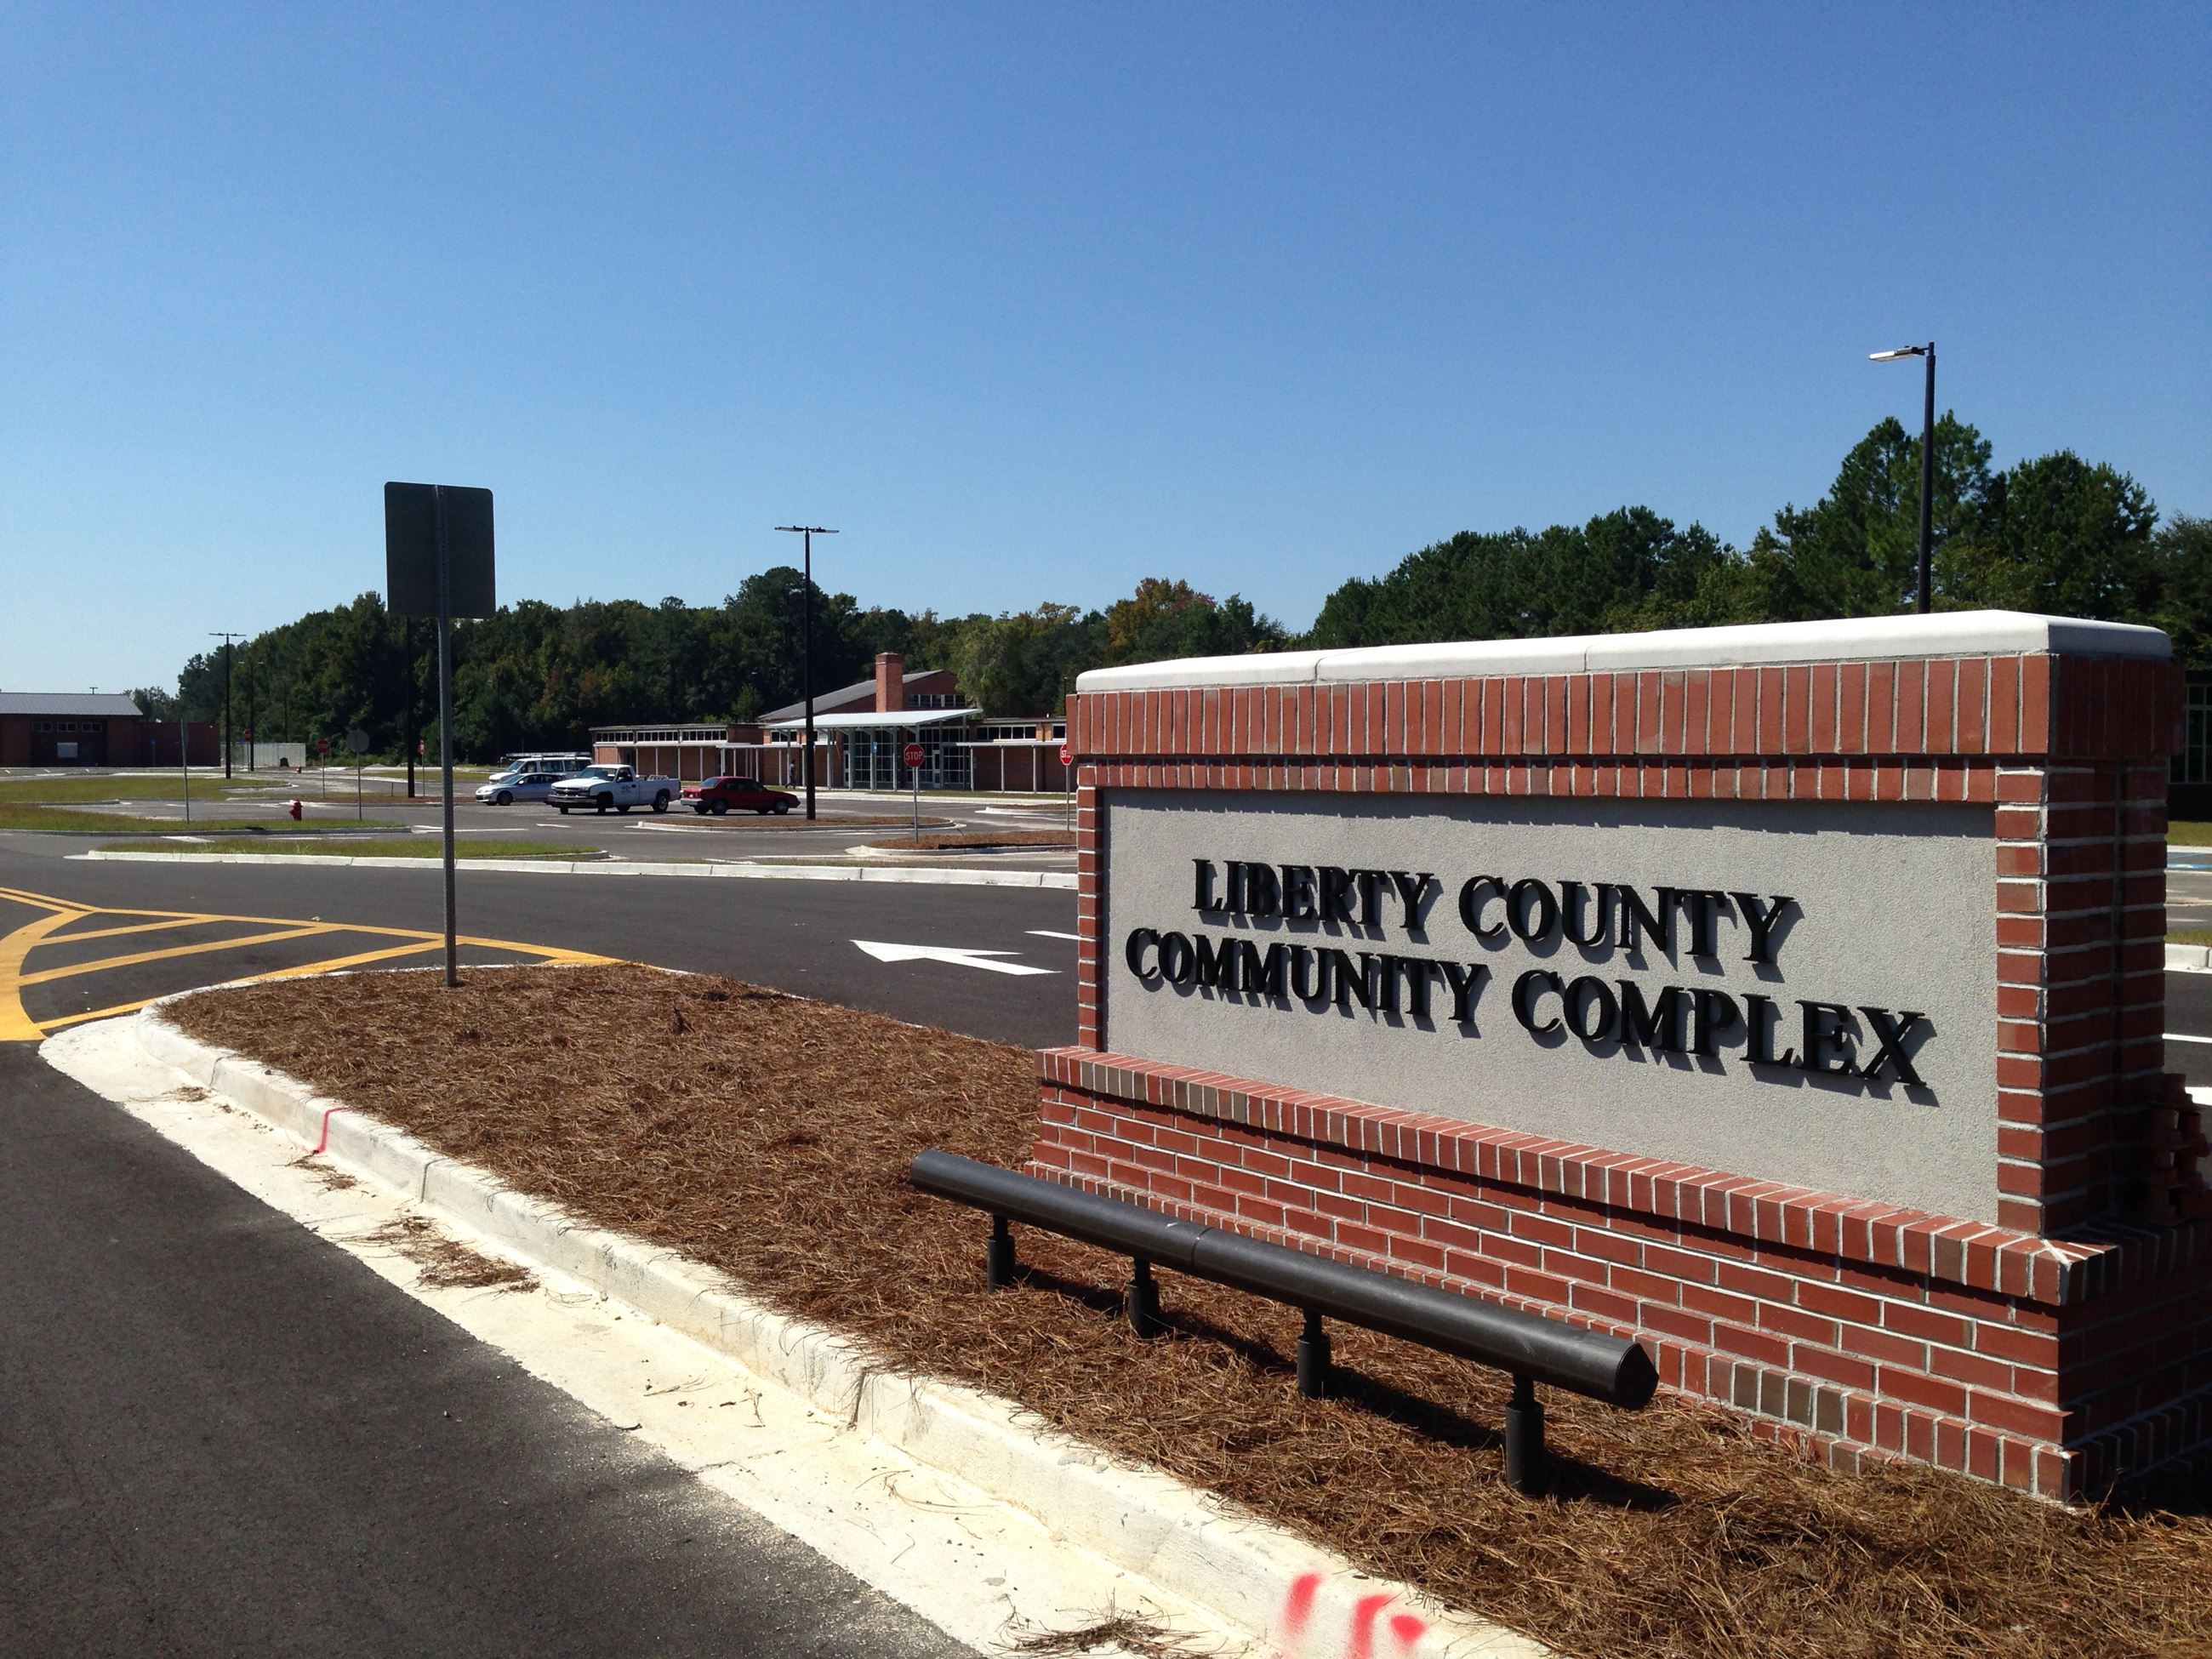 Liberty County Community Complex Sign